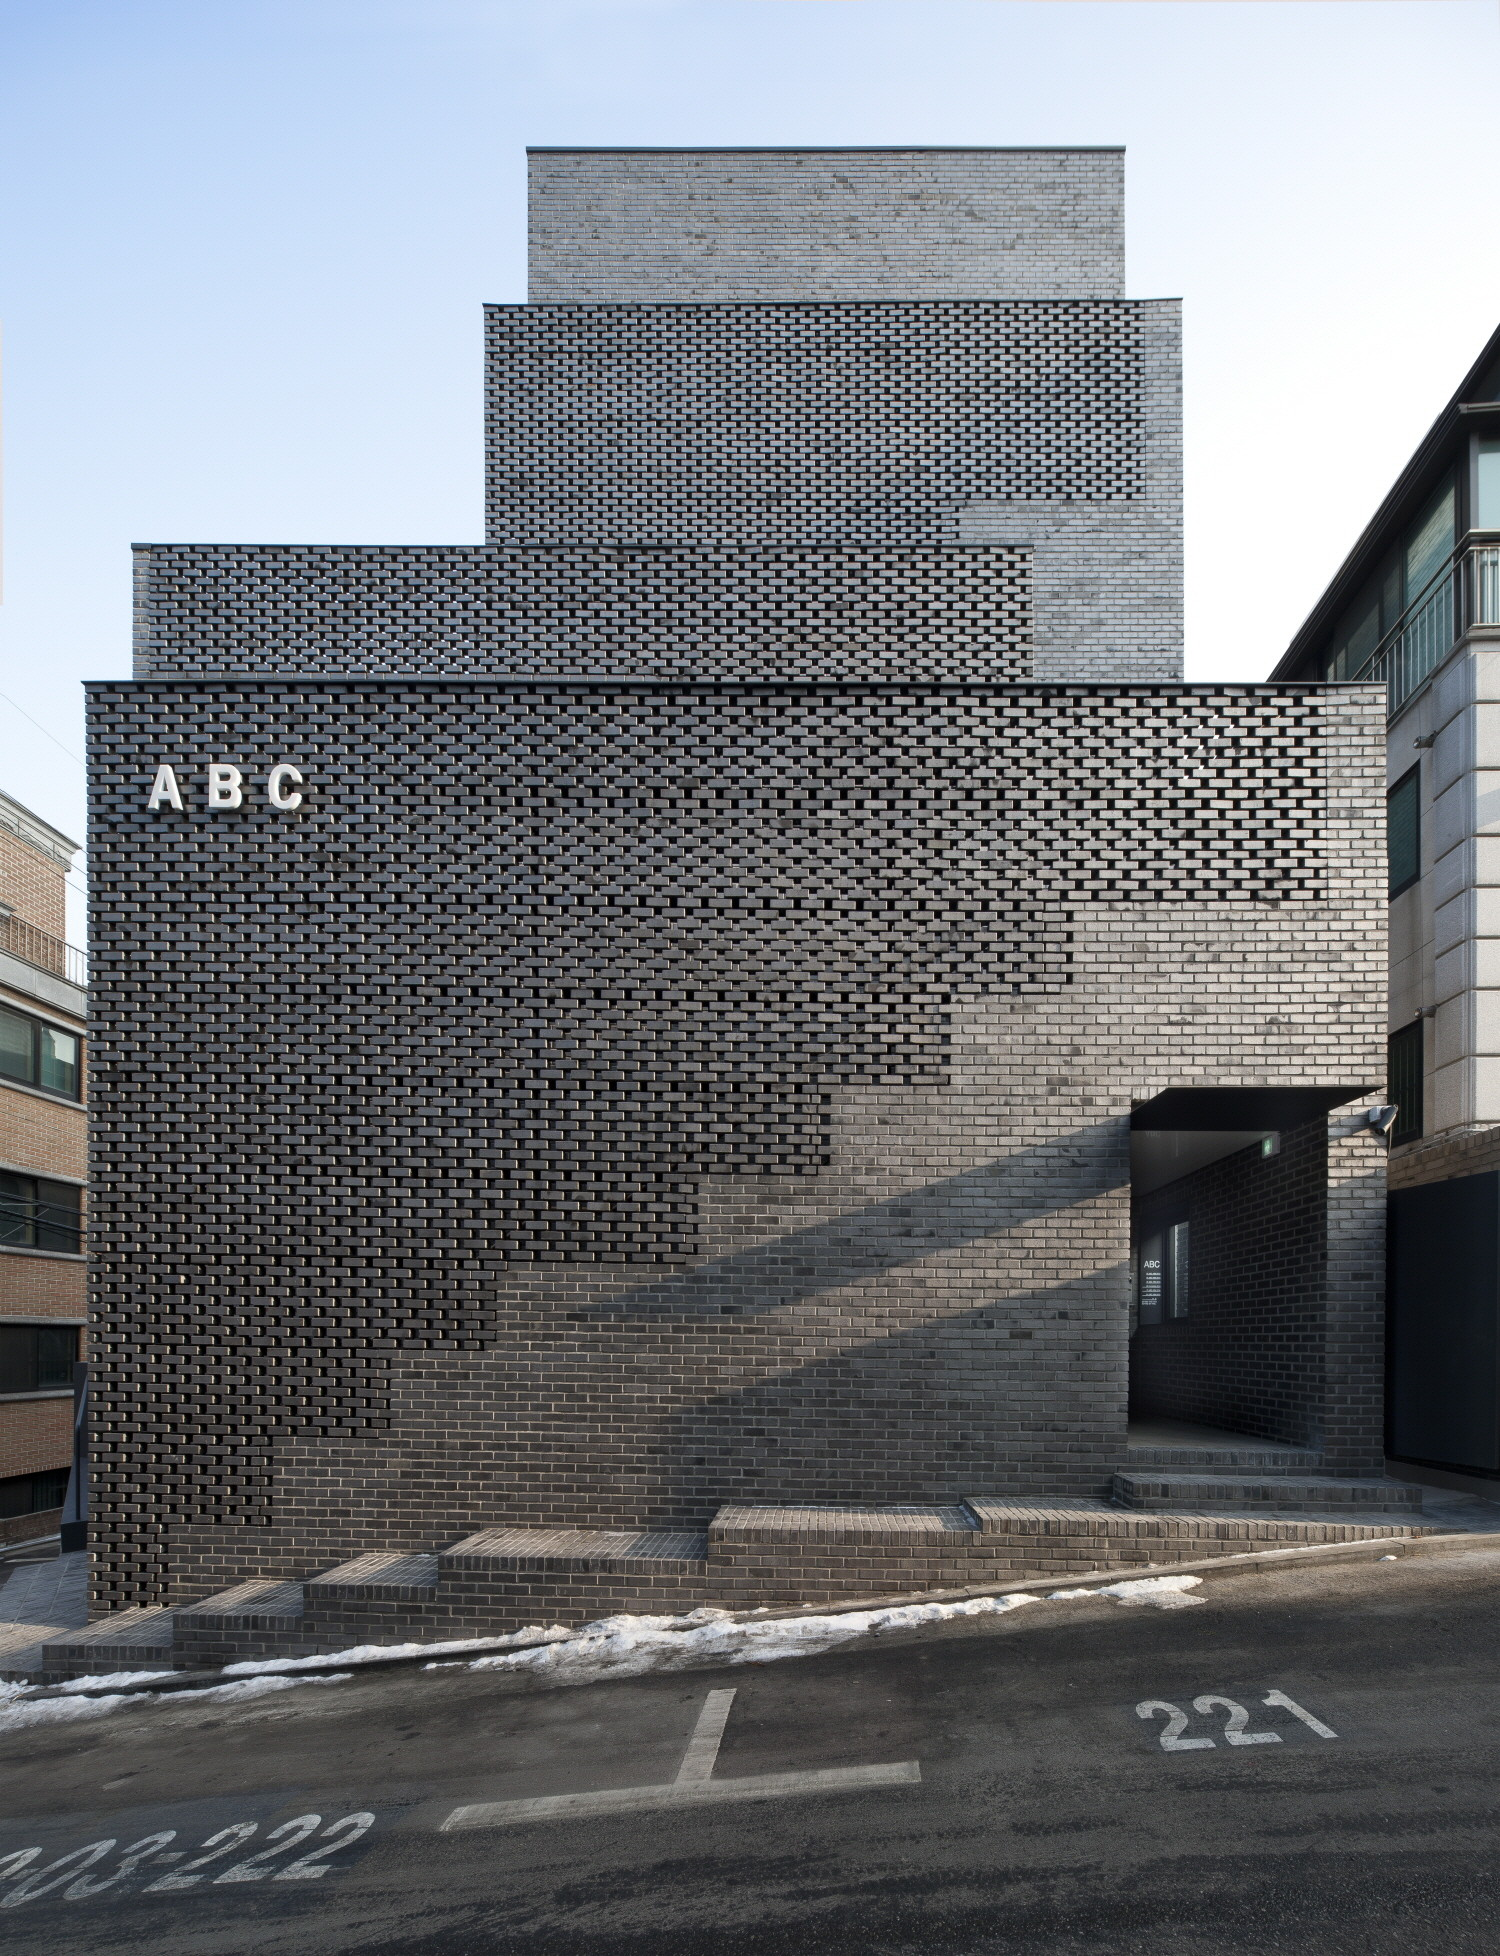 Black Marble Buildings : Abc building wise architecture archdaily